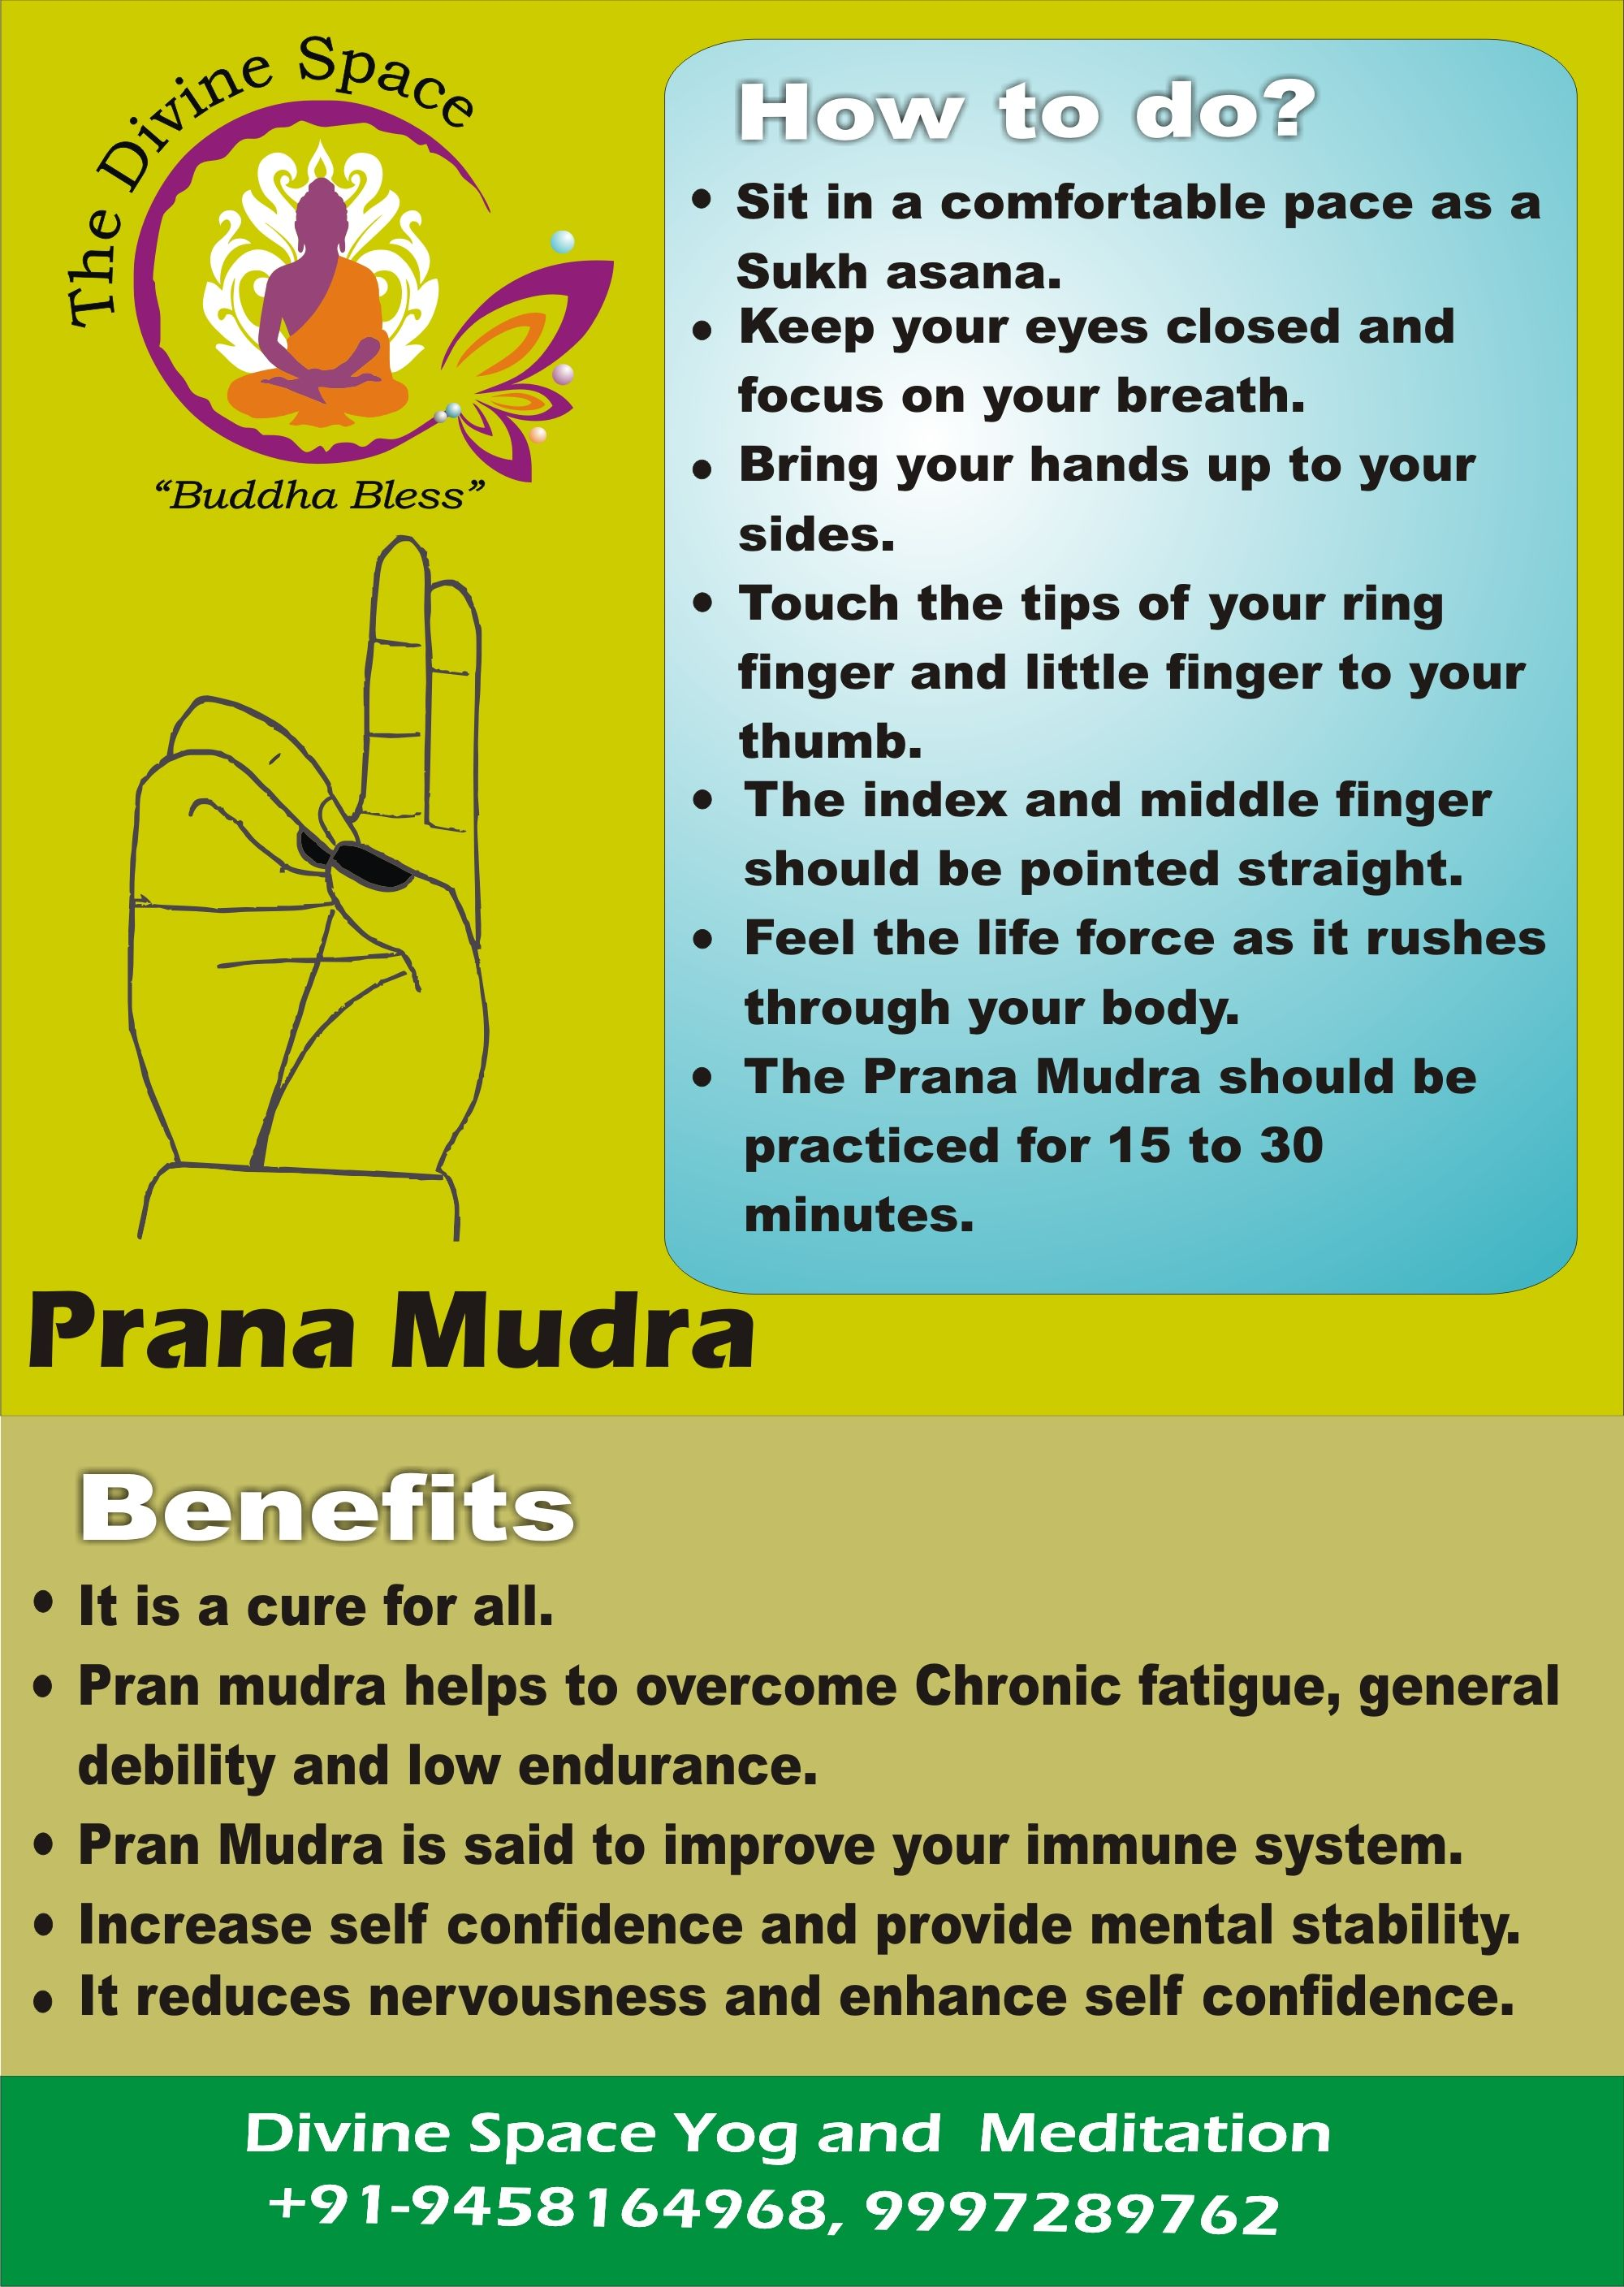 Prana mudra alter the energy in the body, it is